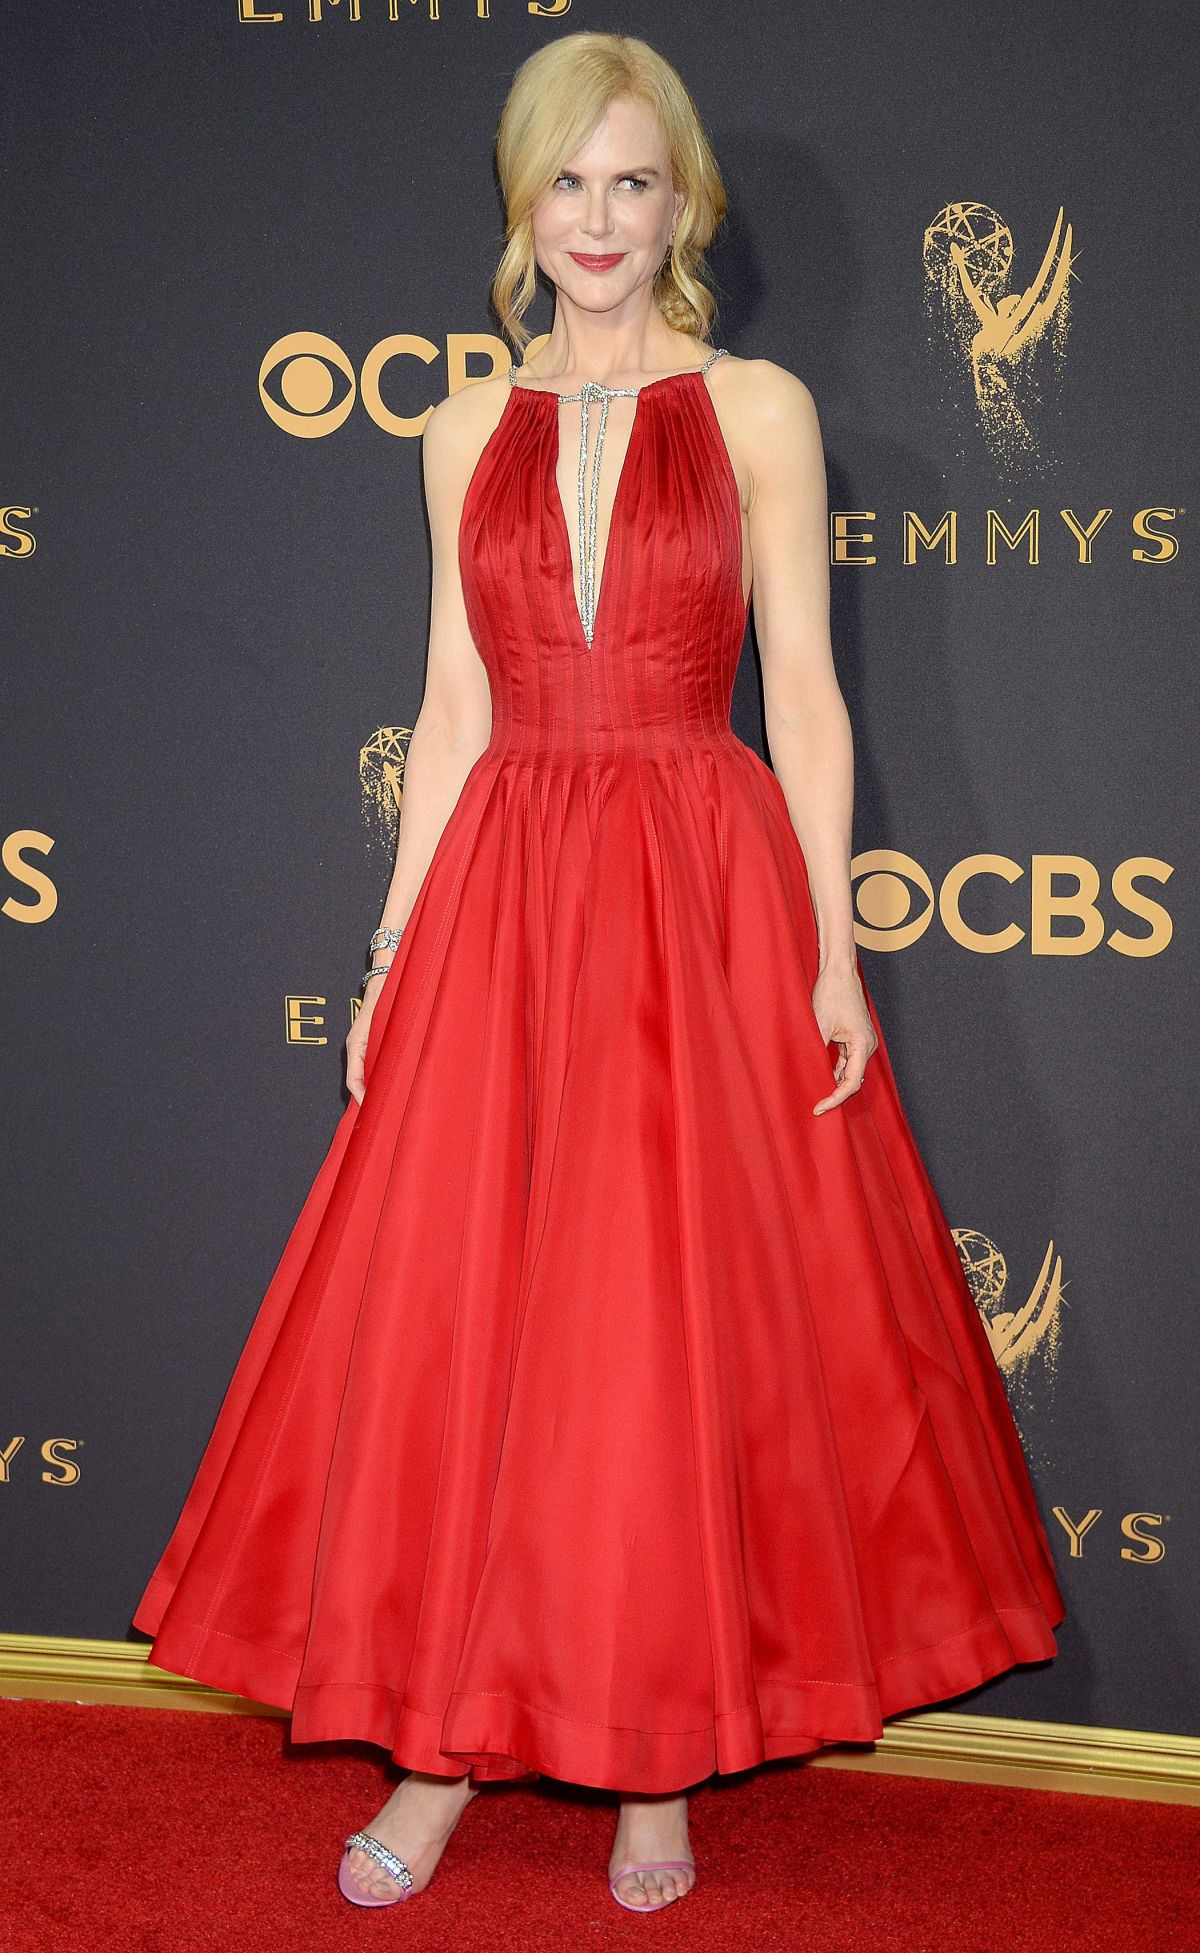 NICOLE KIDMAN at 69th Annual Primetime EMMY Awards in Los Angeles 09/17/2017